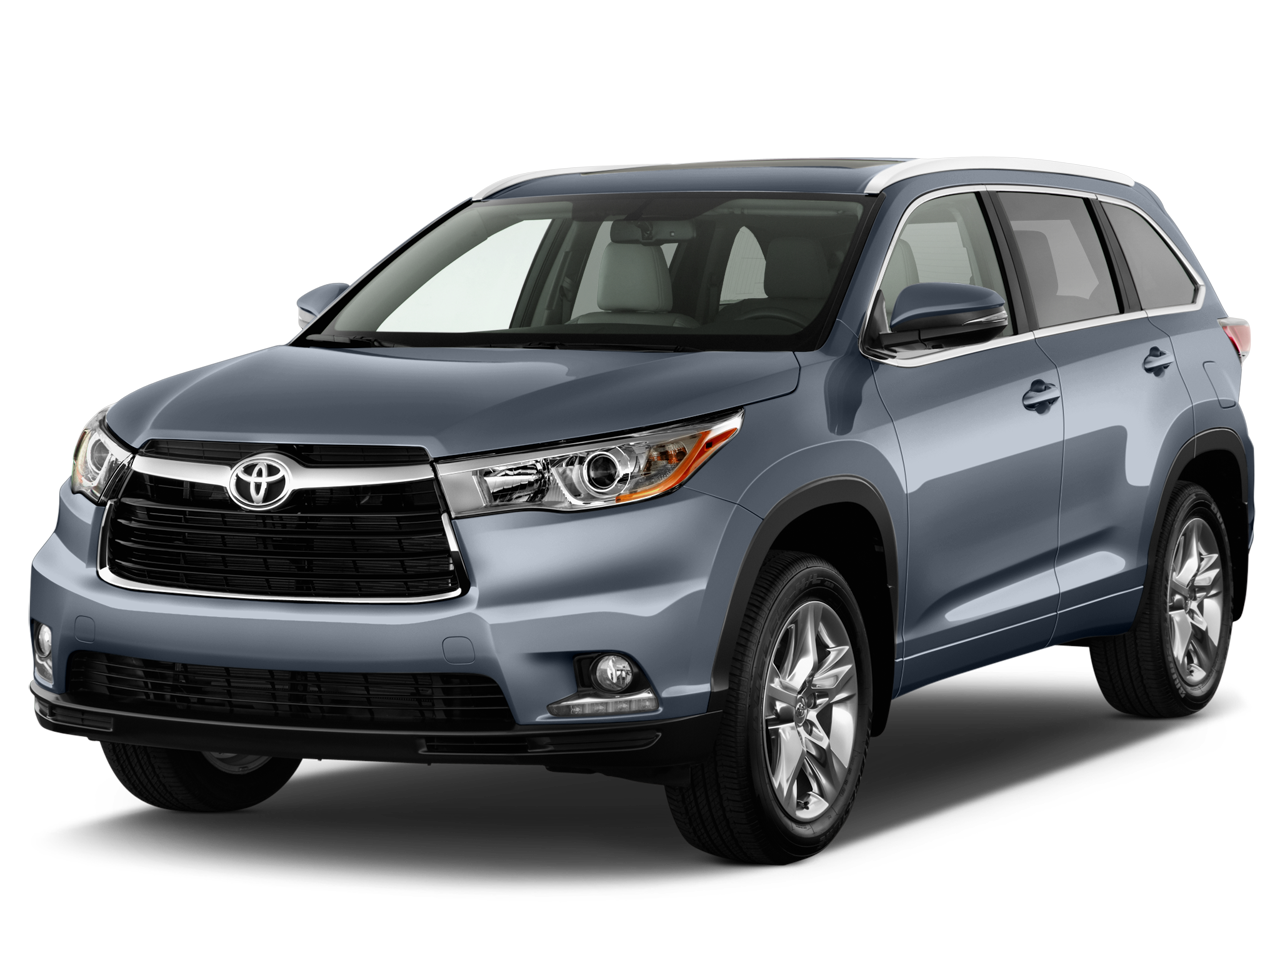 new 2016 toyota highlander limited near kennewick wa. Black Bedroom Furniture Sets. Home Design Ideas